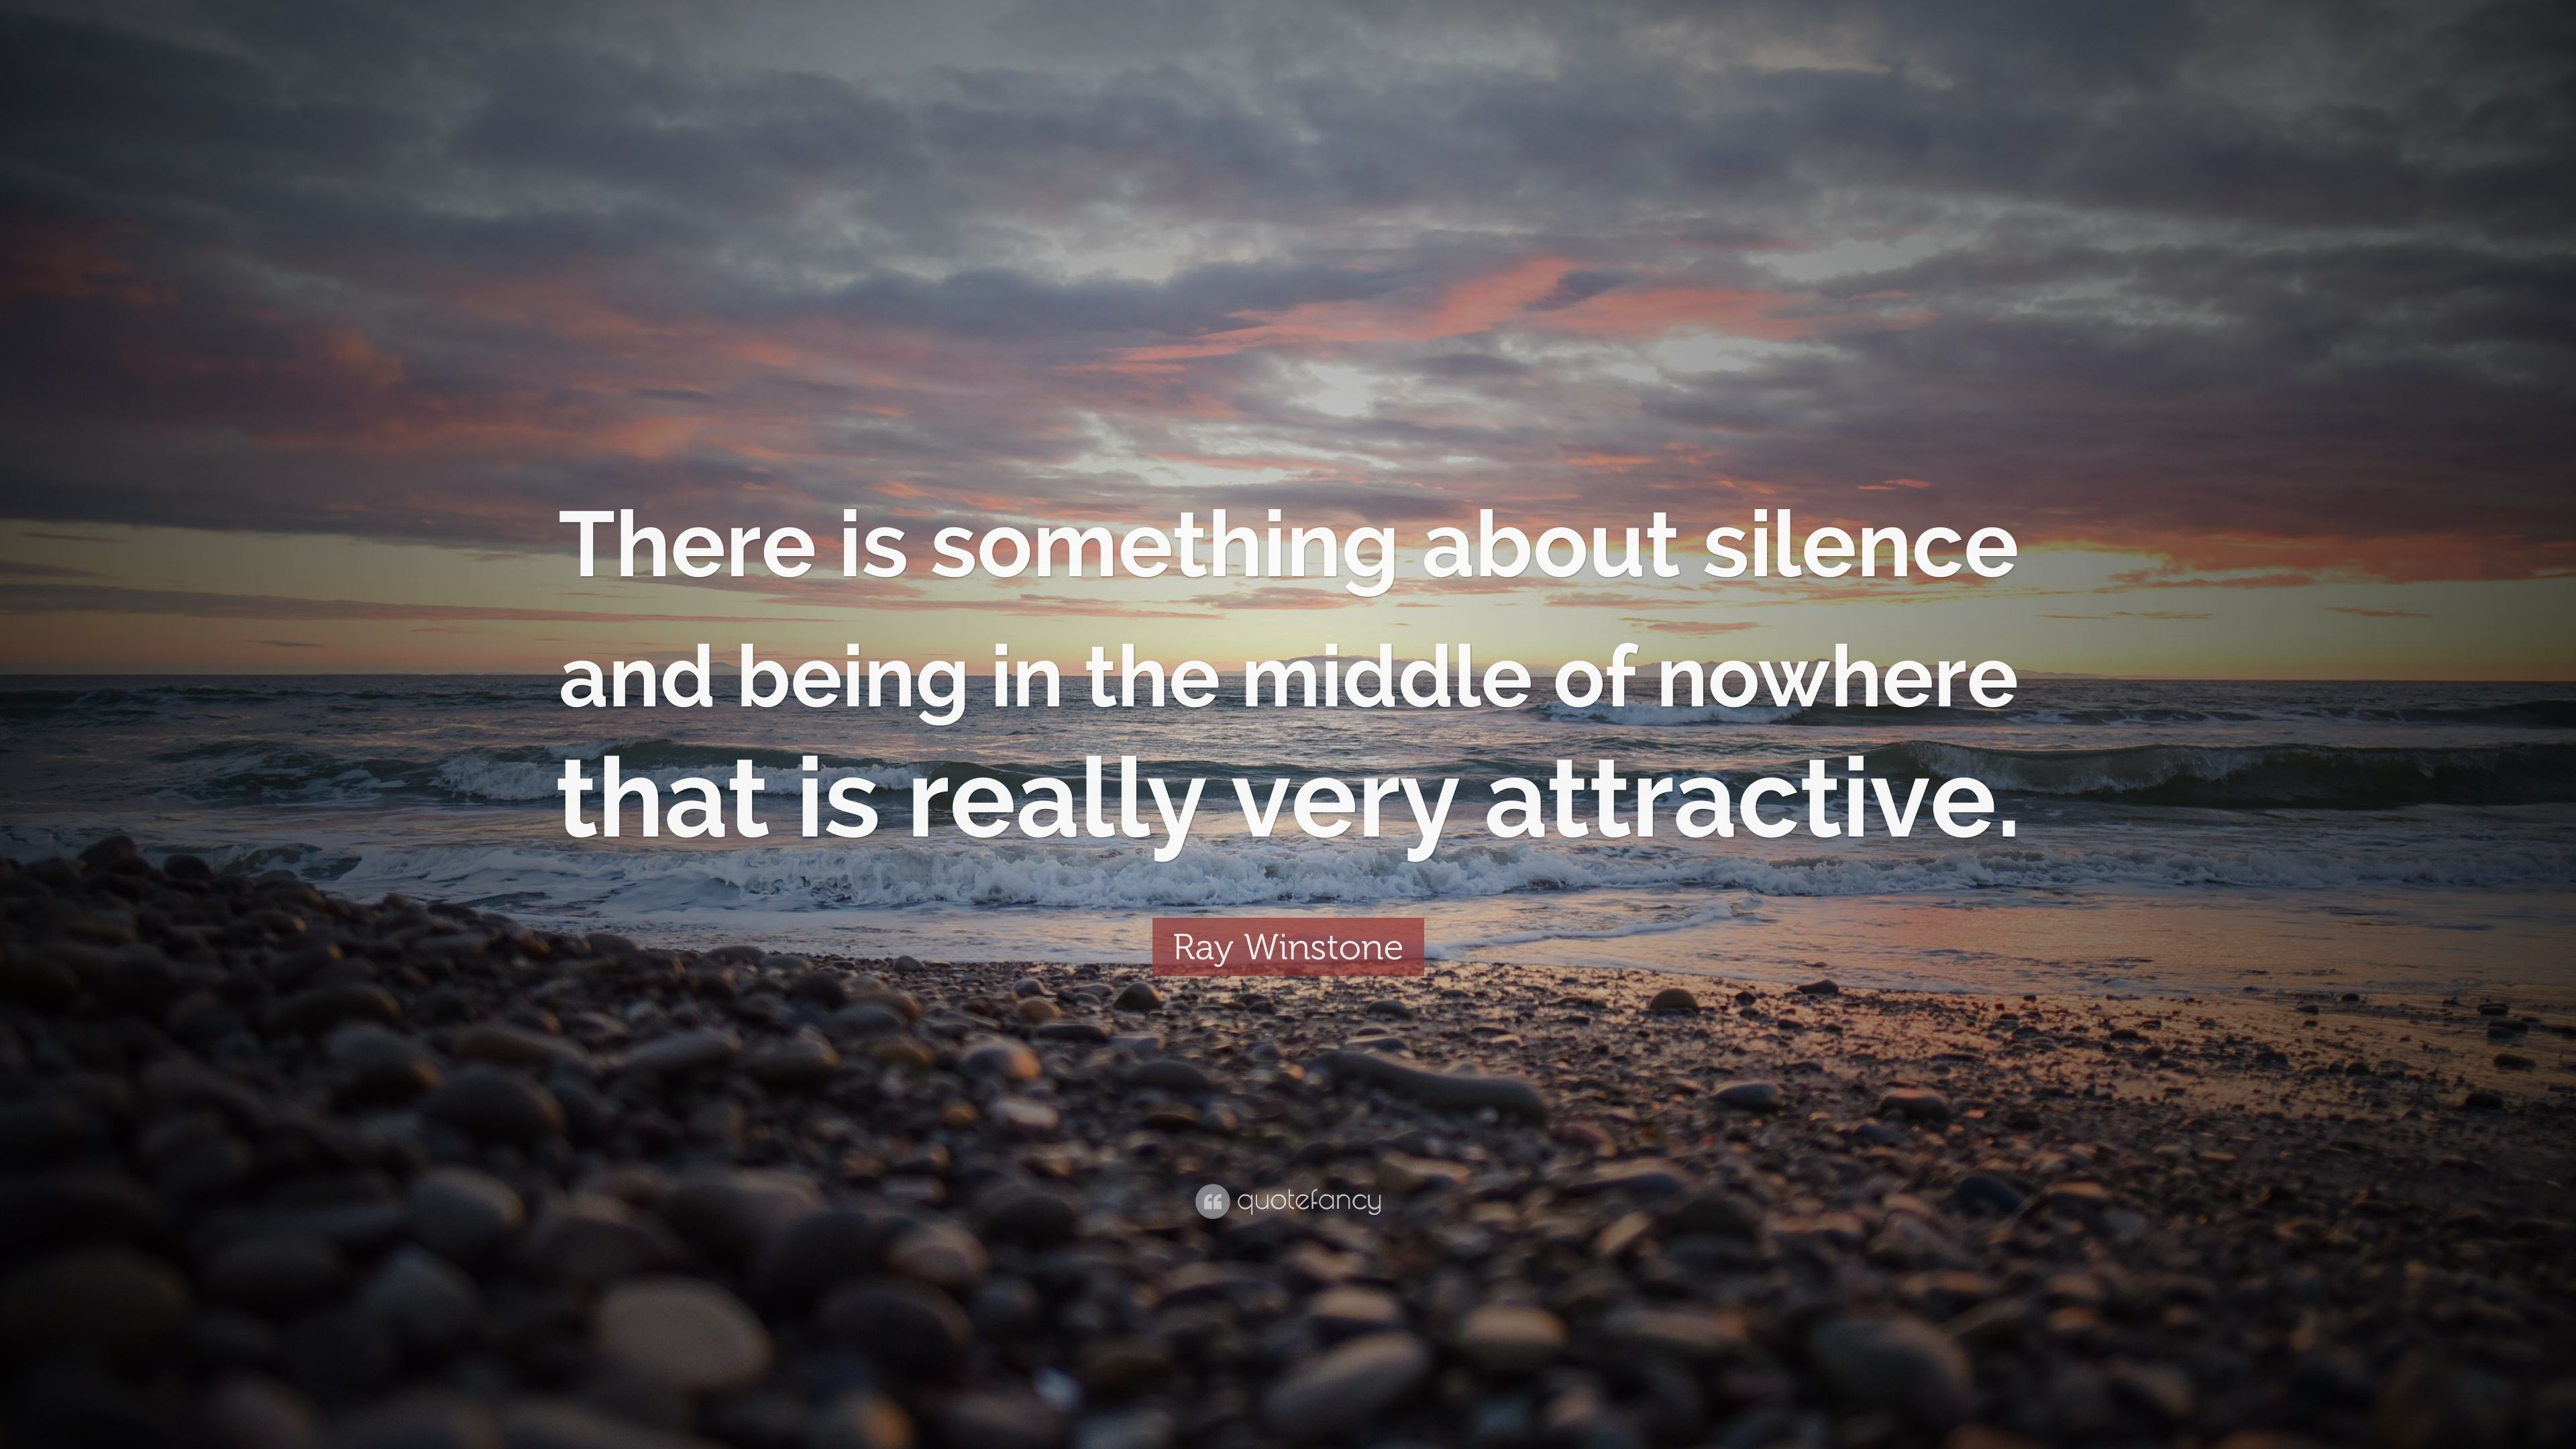 about silence